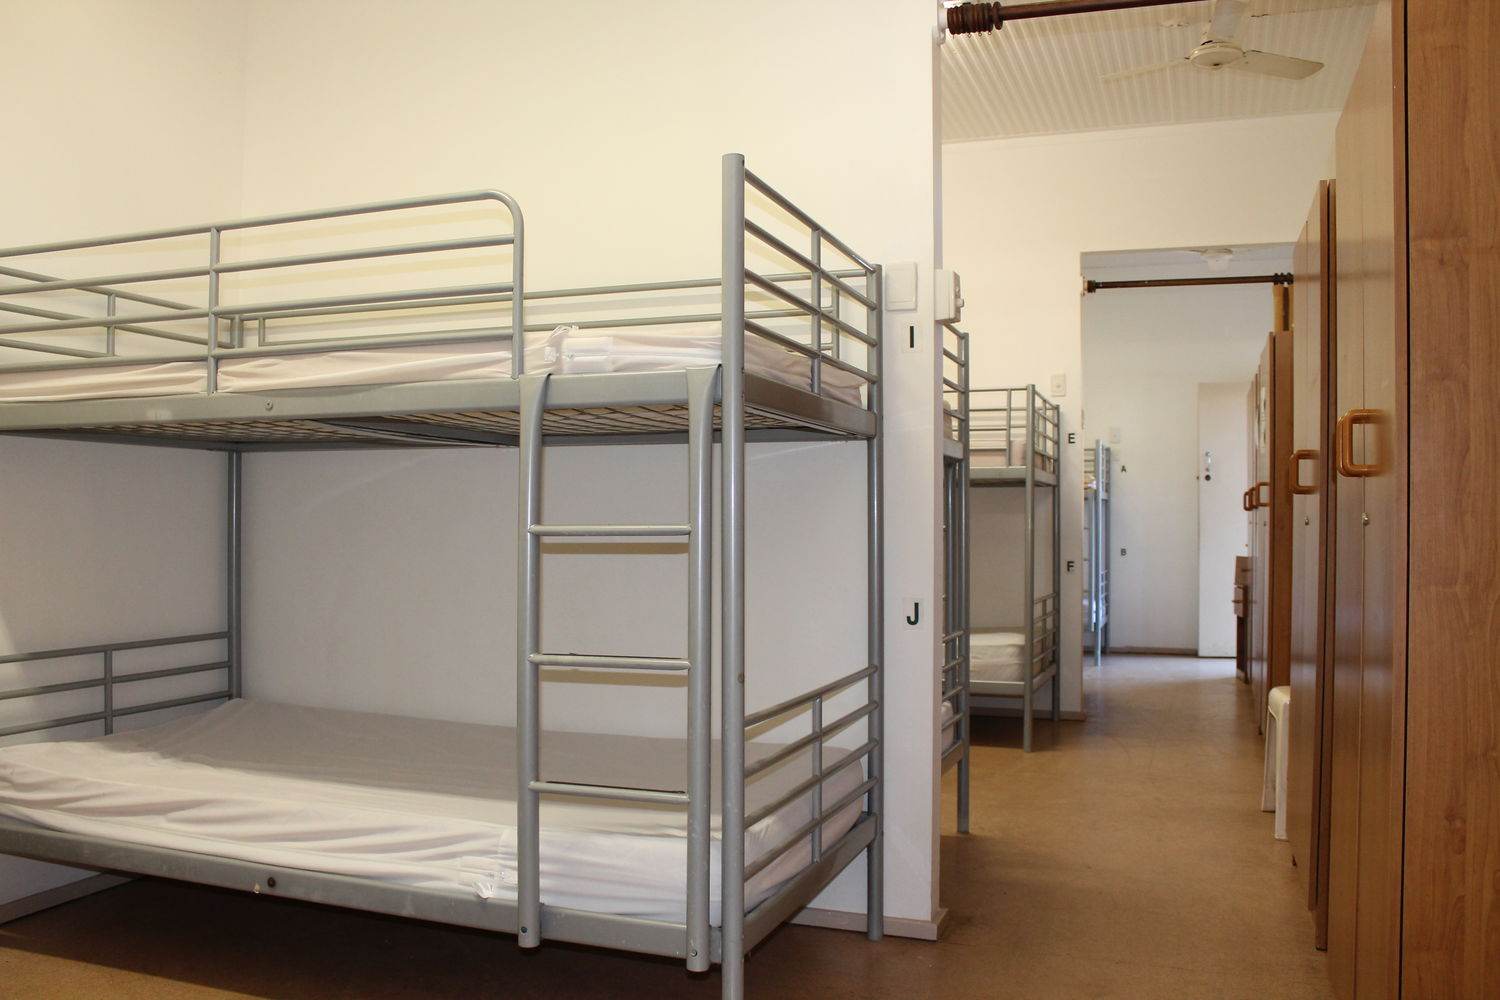 Dorm room 12- beds